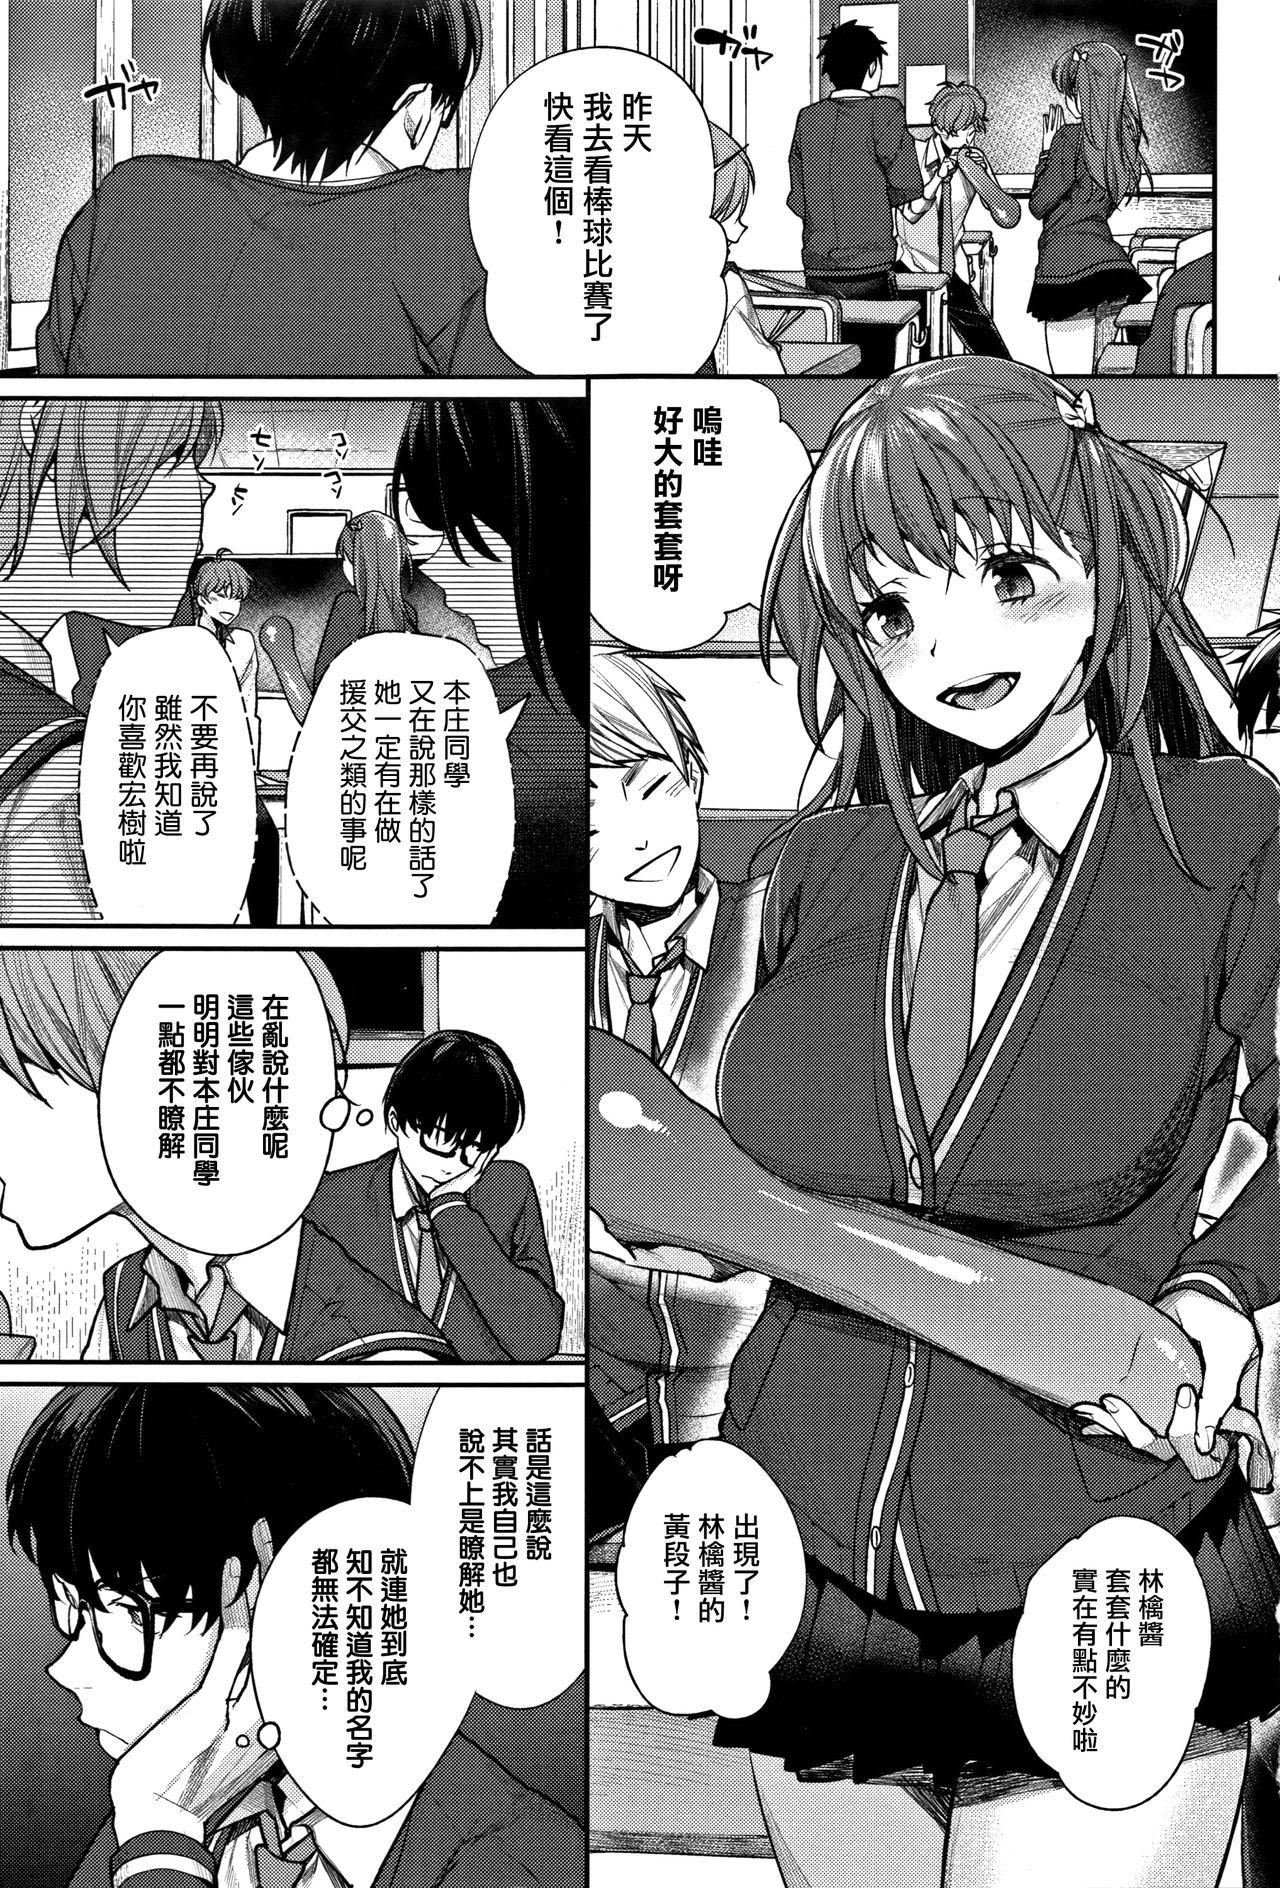 [MGMEE] Bokura no Etude - Our H Chu Do Ch.1-7 [Chinese] [無邪気漢化組] 4